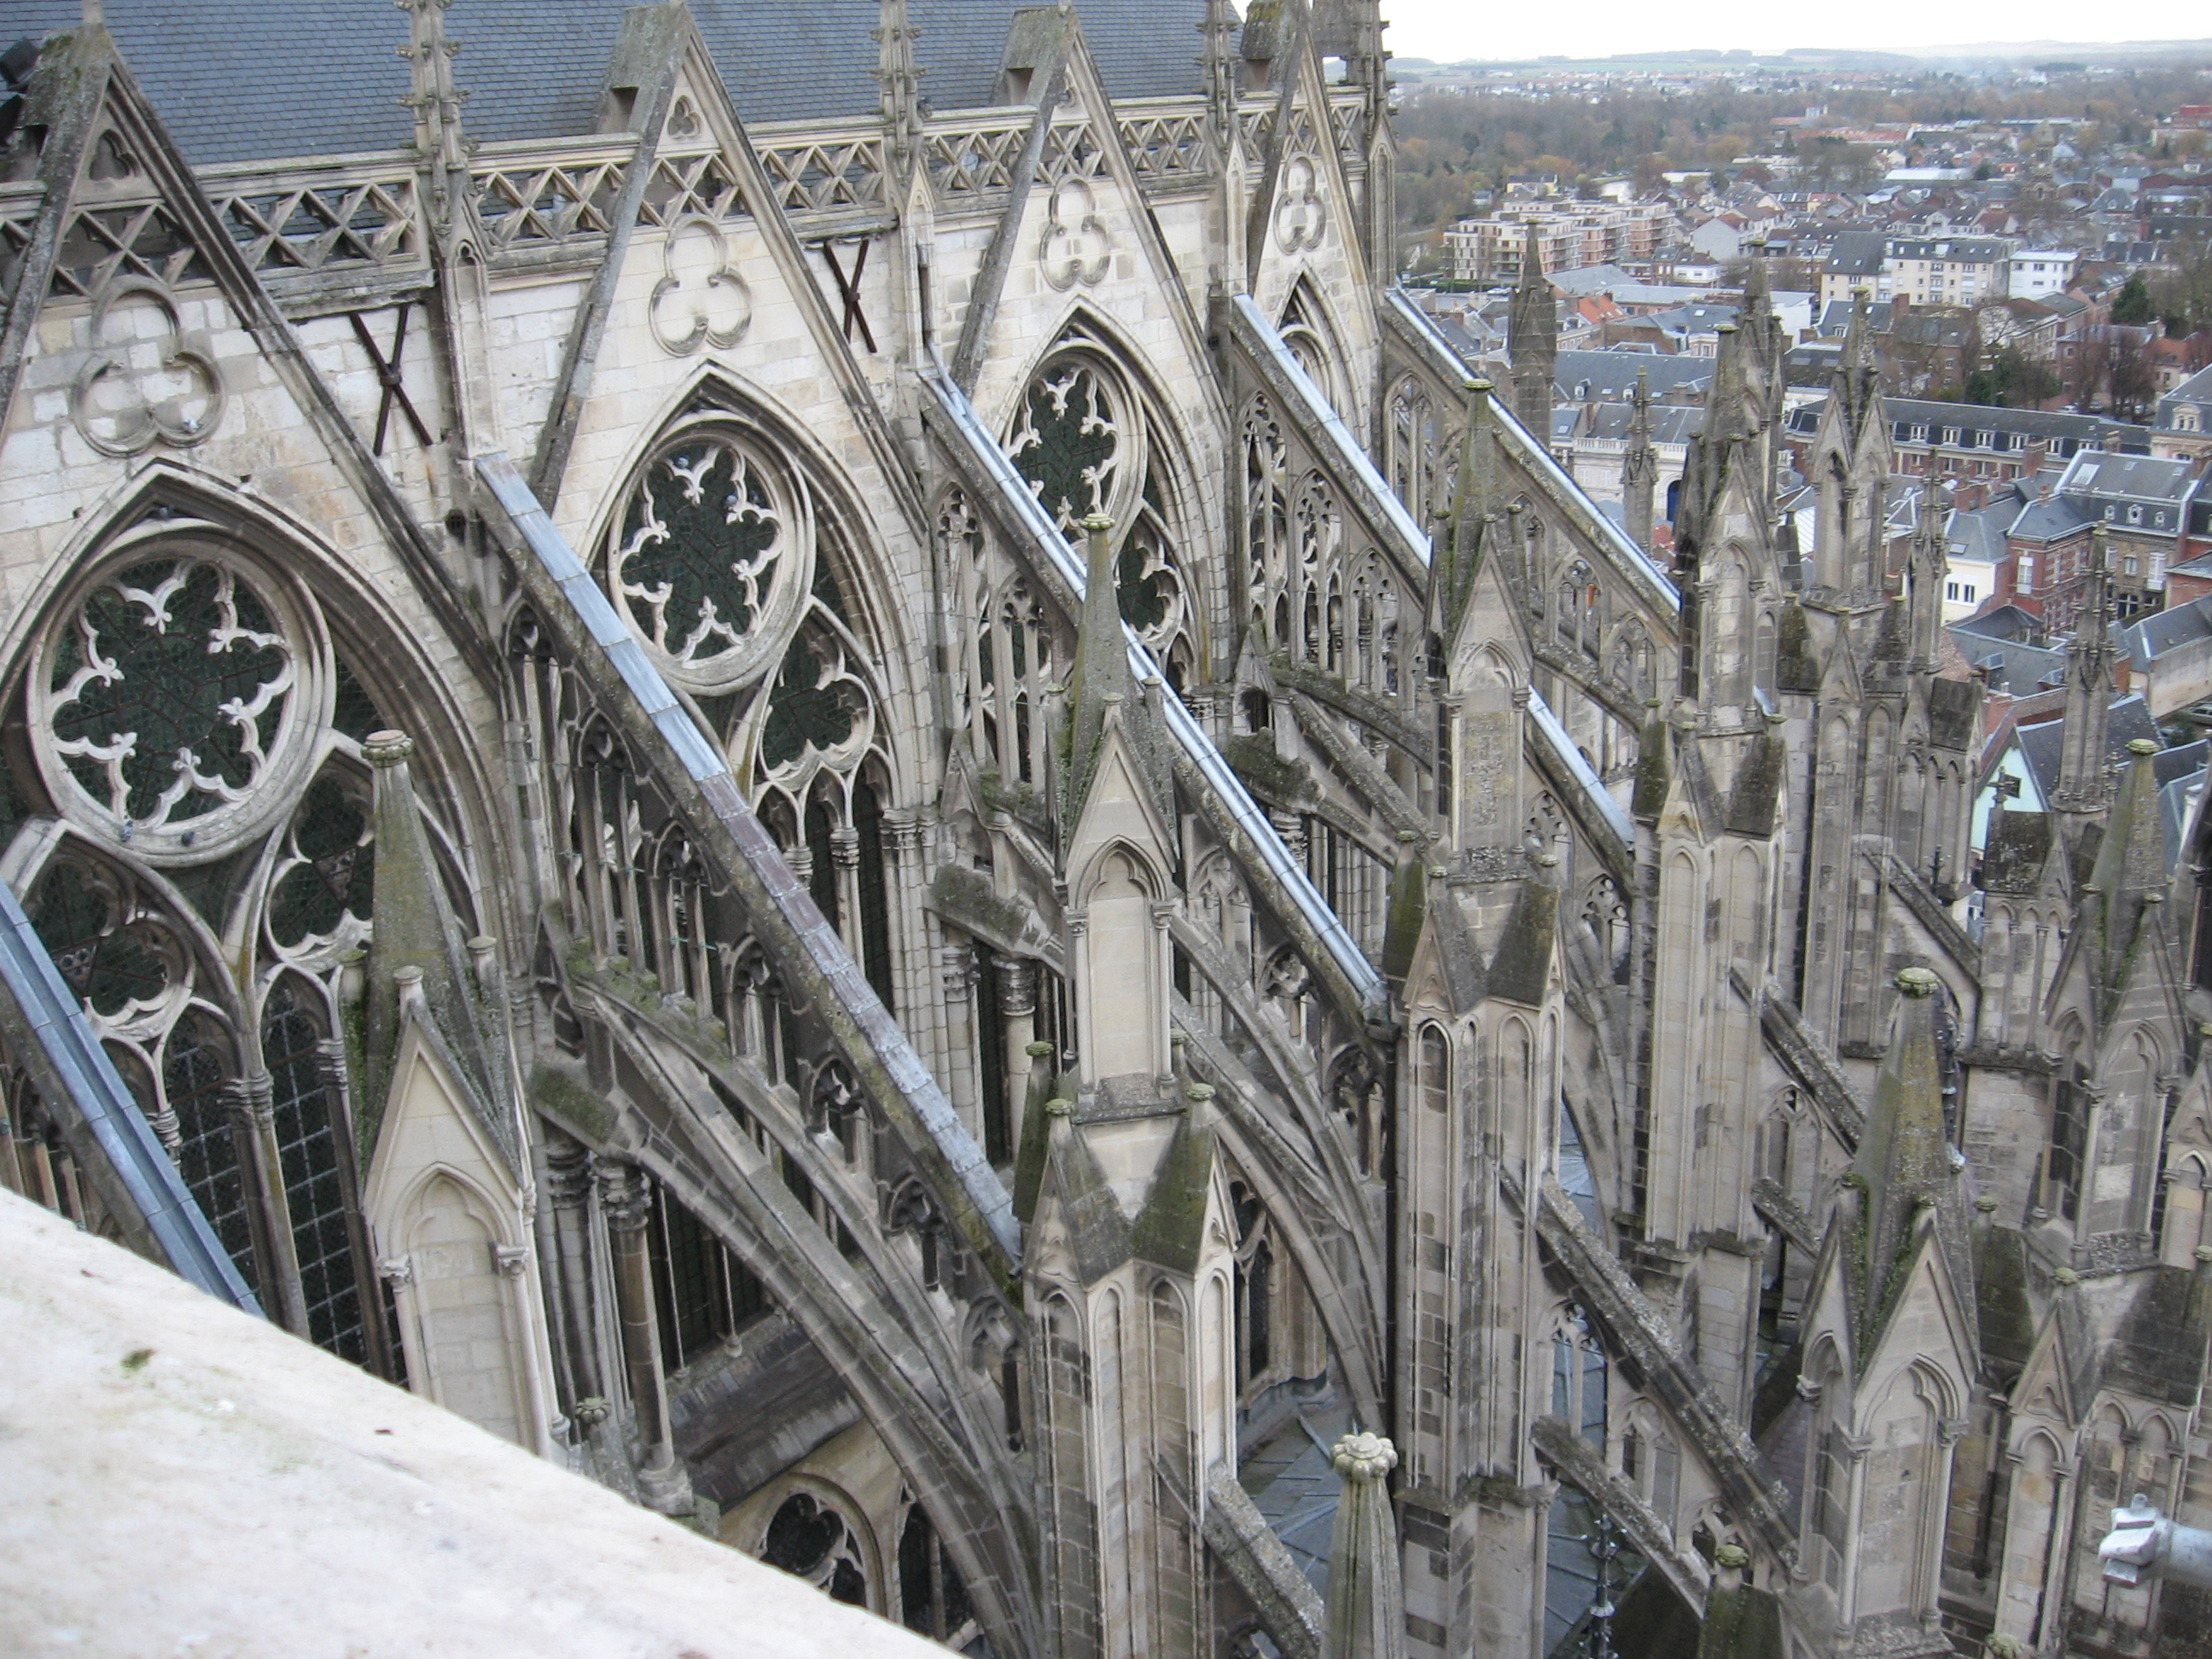 Image Source:  Http://upload.wikimedia.org/wikipedia/commons/0/06/Amiens_Cath%C3%A9drale_Notre Dame_arc Boutant_sud Est_4?uselangu003dfr